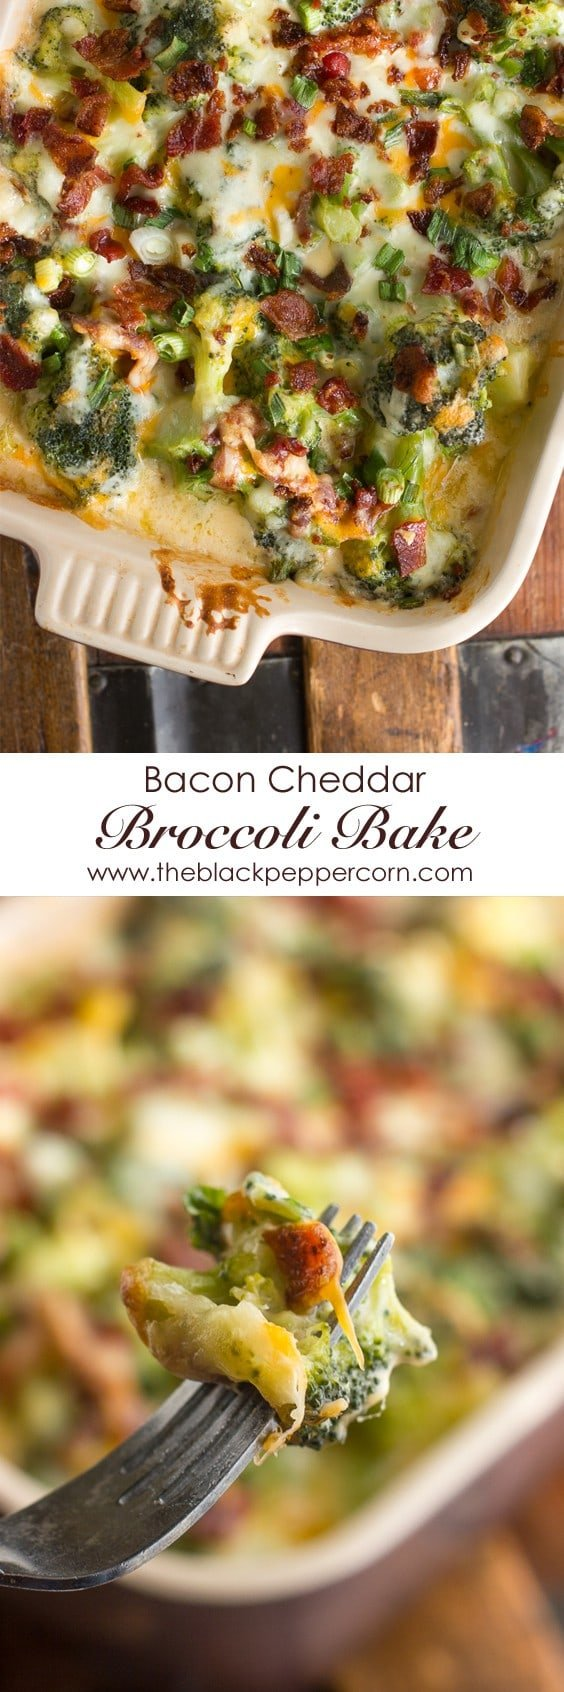 Bacon Cheddar Broccoli Bake